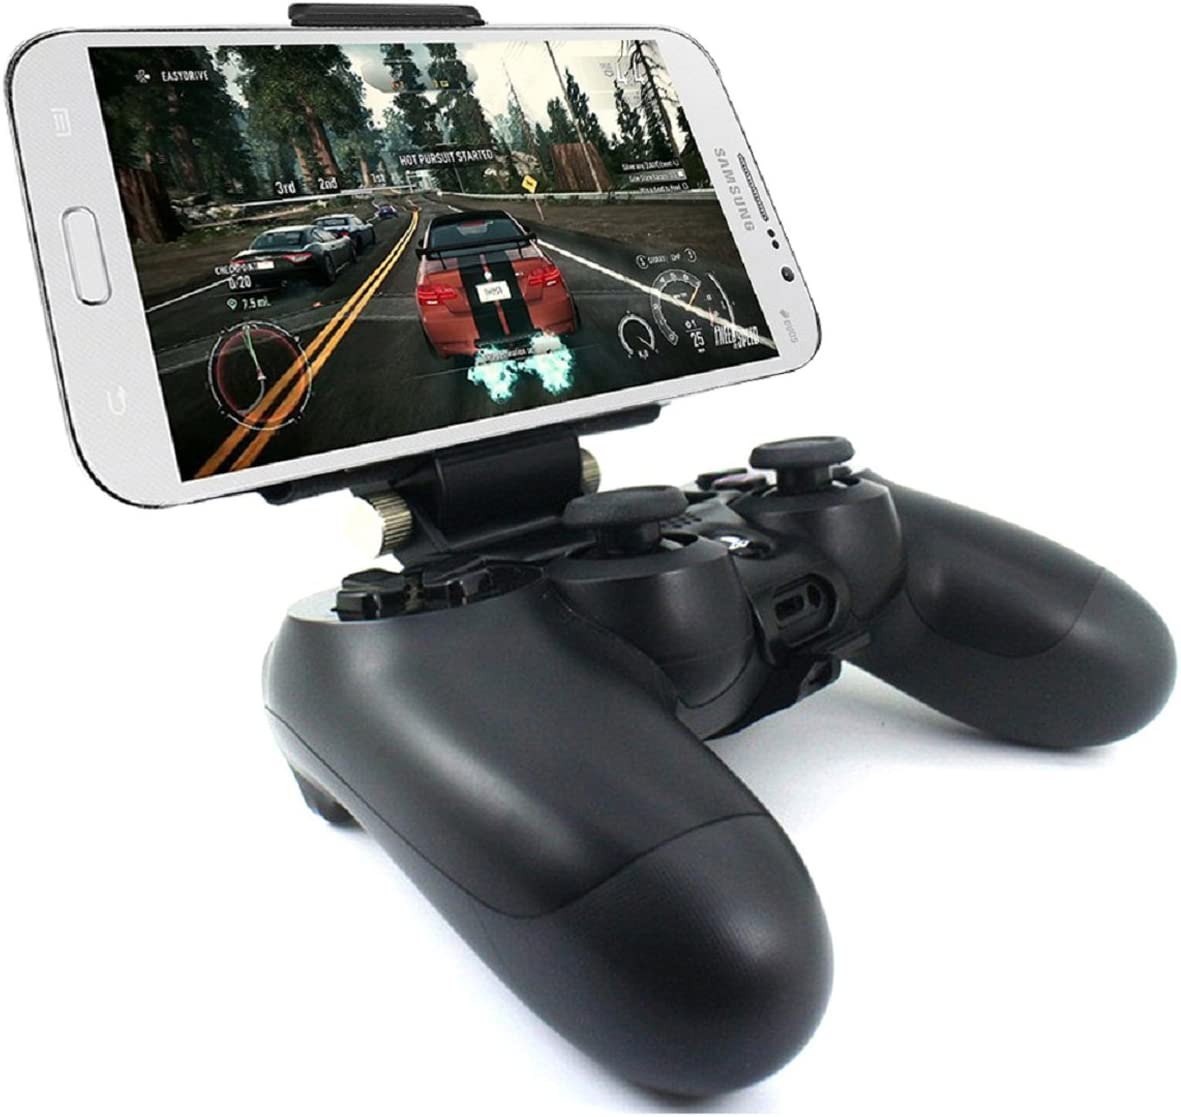 Amazon Com Megadream Ps4 Controller Phone Holder Clip For Sony Playstation 4 Ps4 Pro Slim 180 Degree Adjustable Mount Stand Android Samsung Galaxy S9 S8 S7 Note 9 8 Htc One Lg Sony